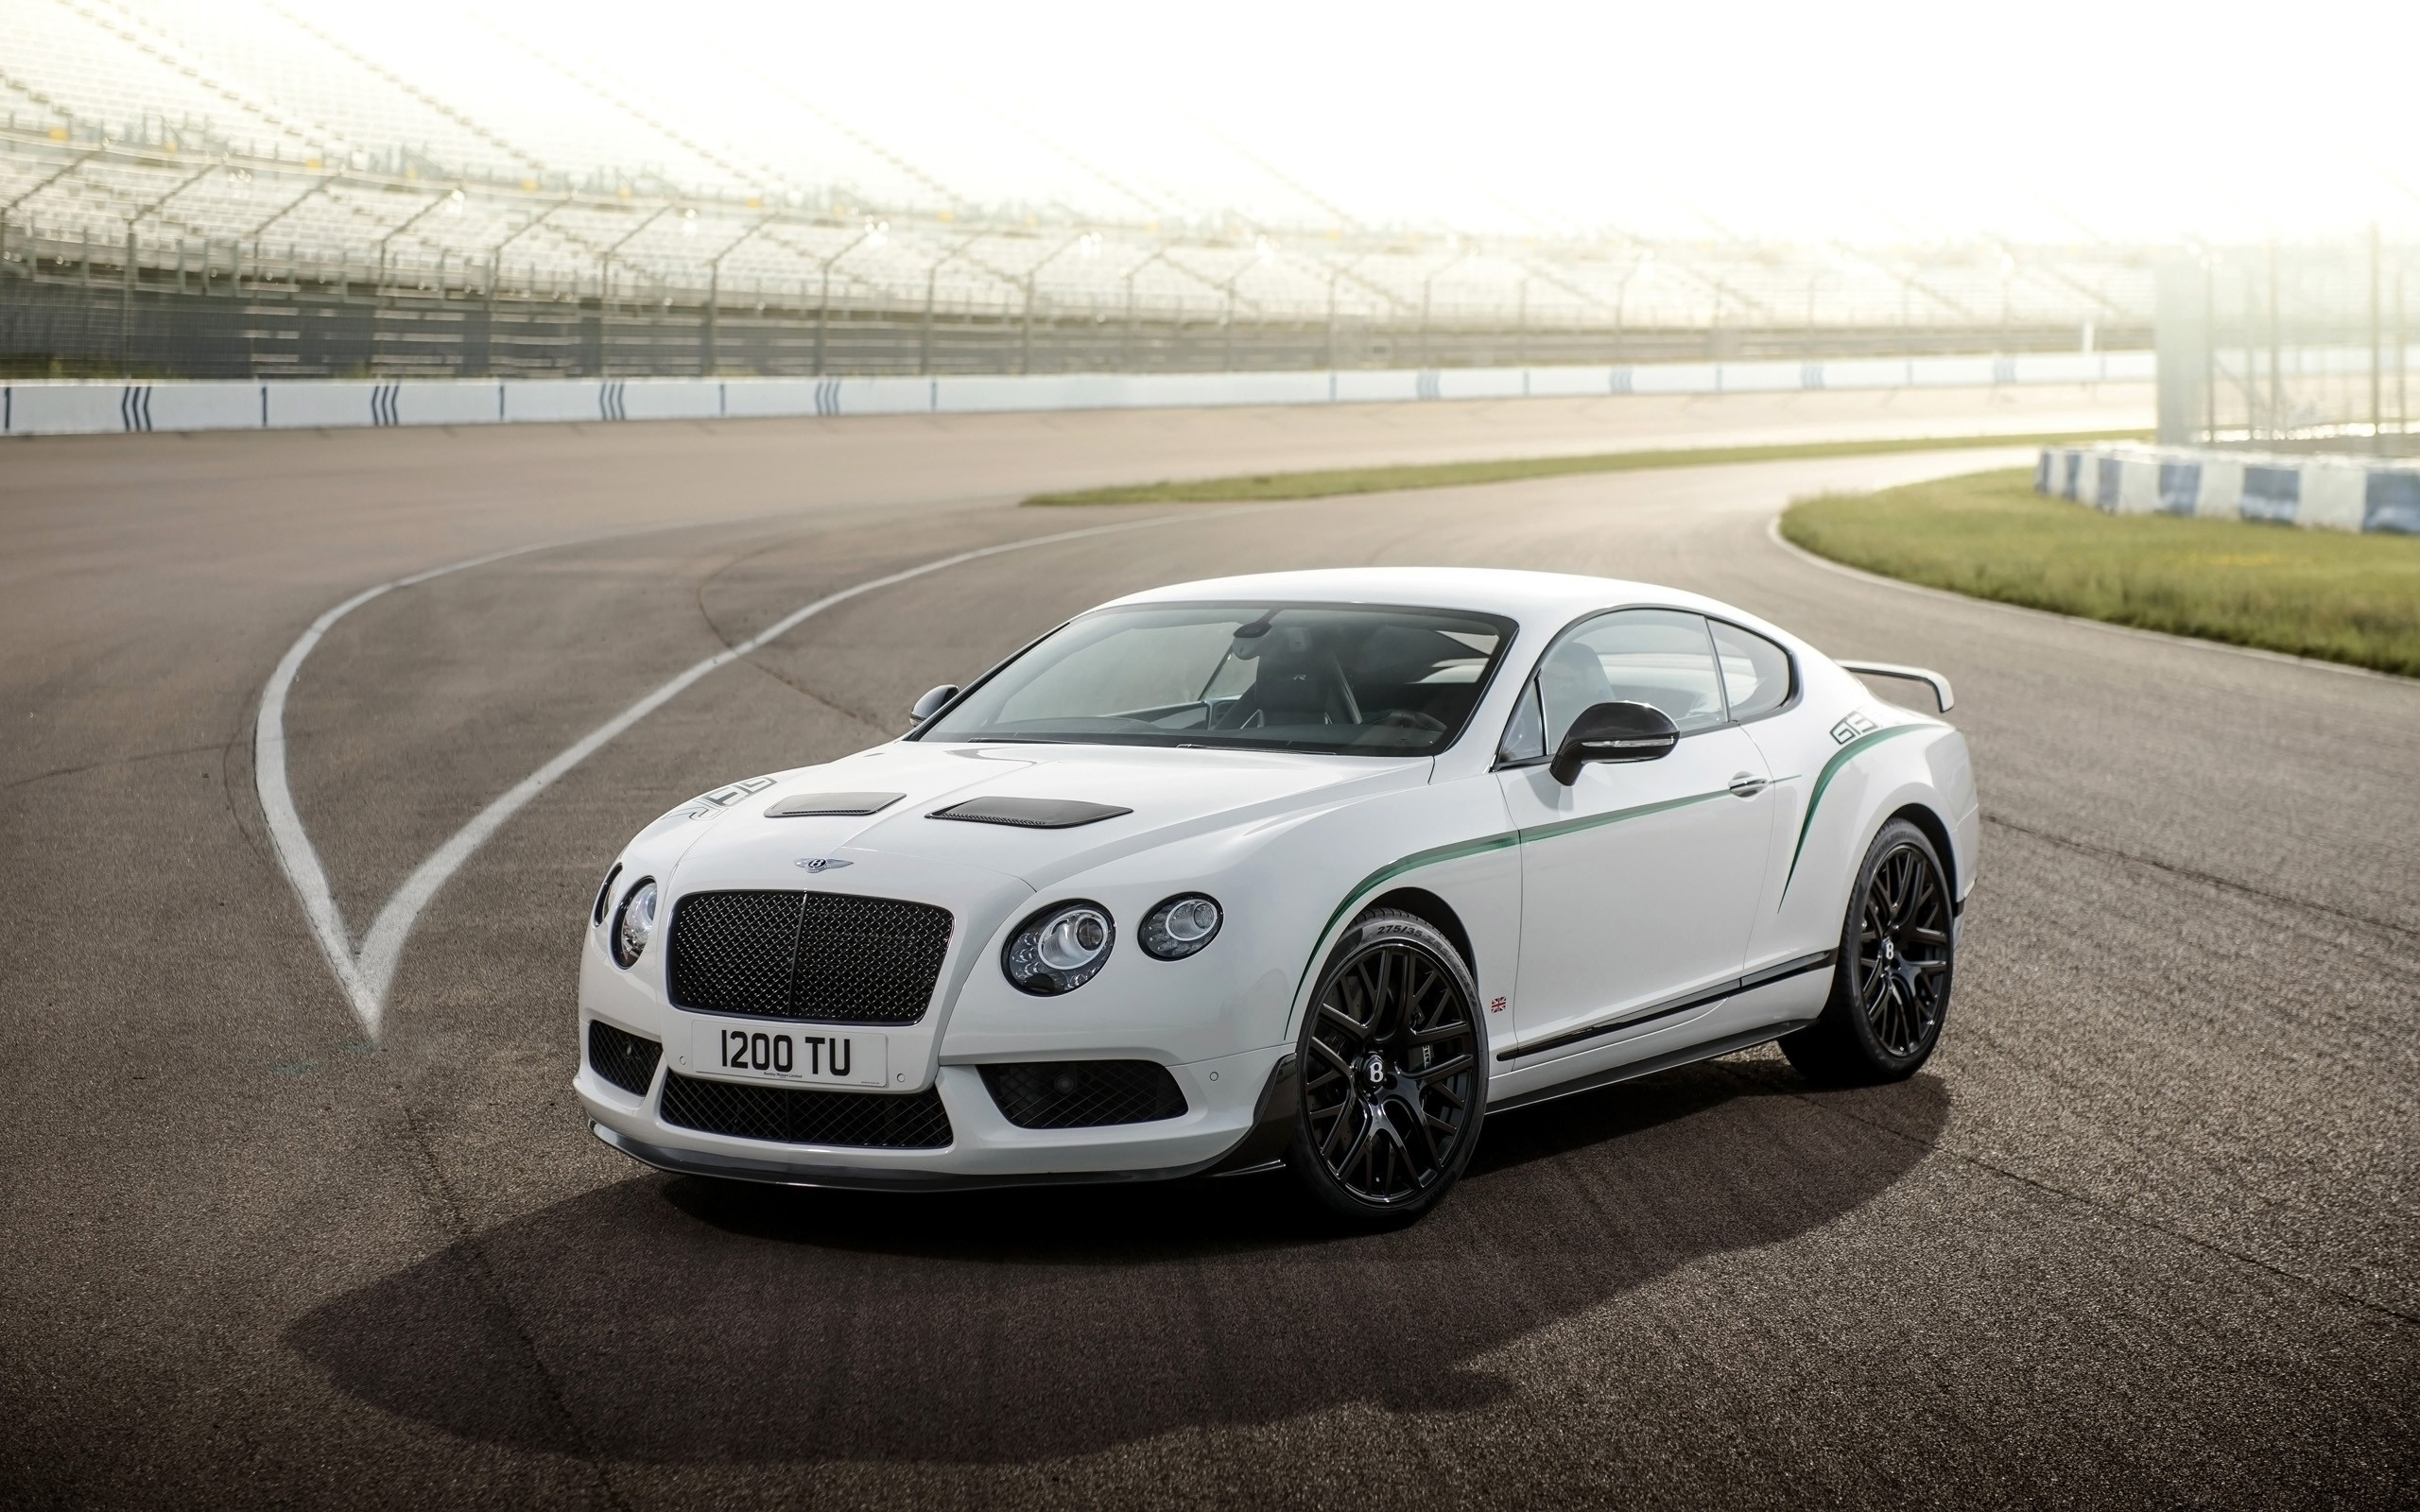 2015 bentley continental gt3 r wallpaper hd car for The bentley